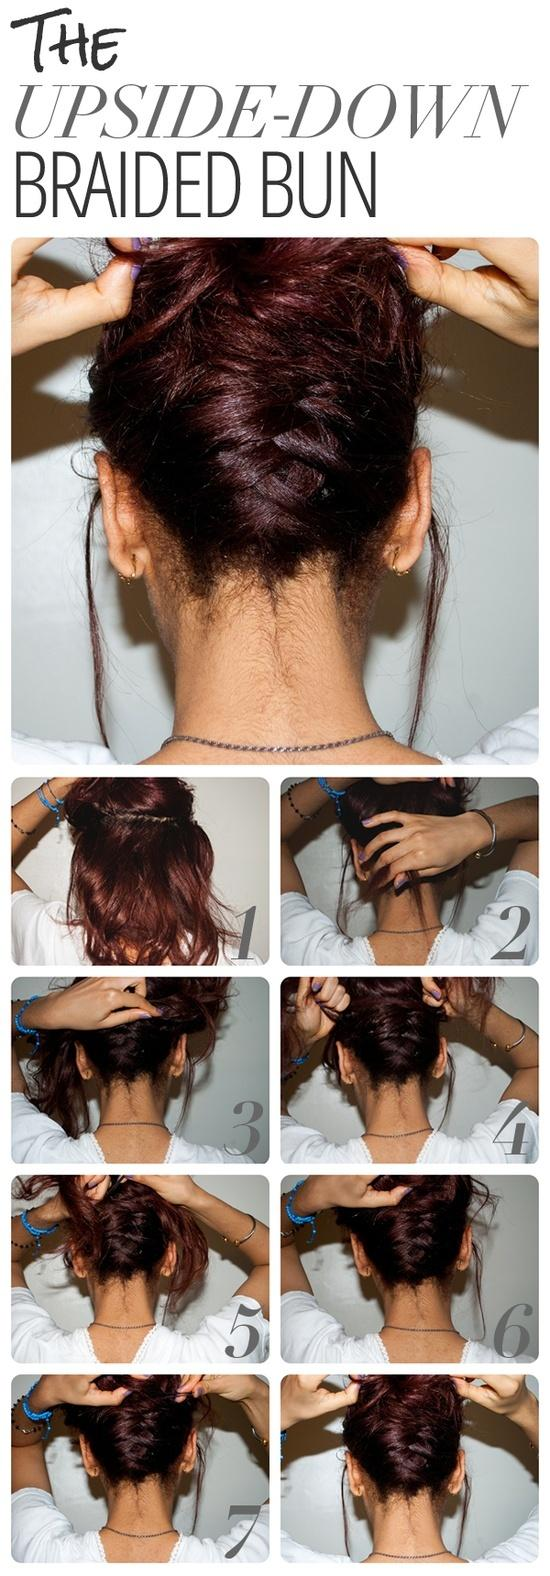 Diy upside down braided bun hairstyle do it yourself fashion tips diy fashion projects 241172 Diy fashion of hairstyle